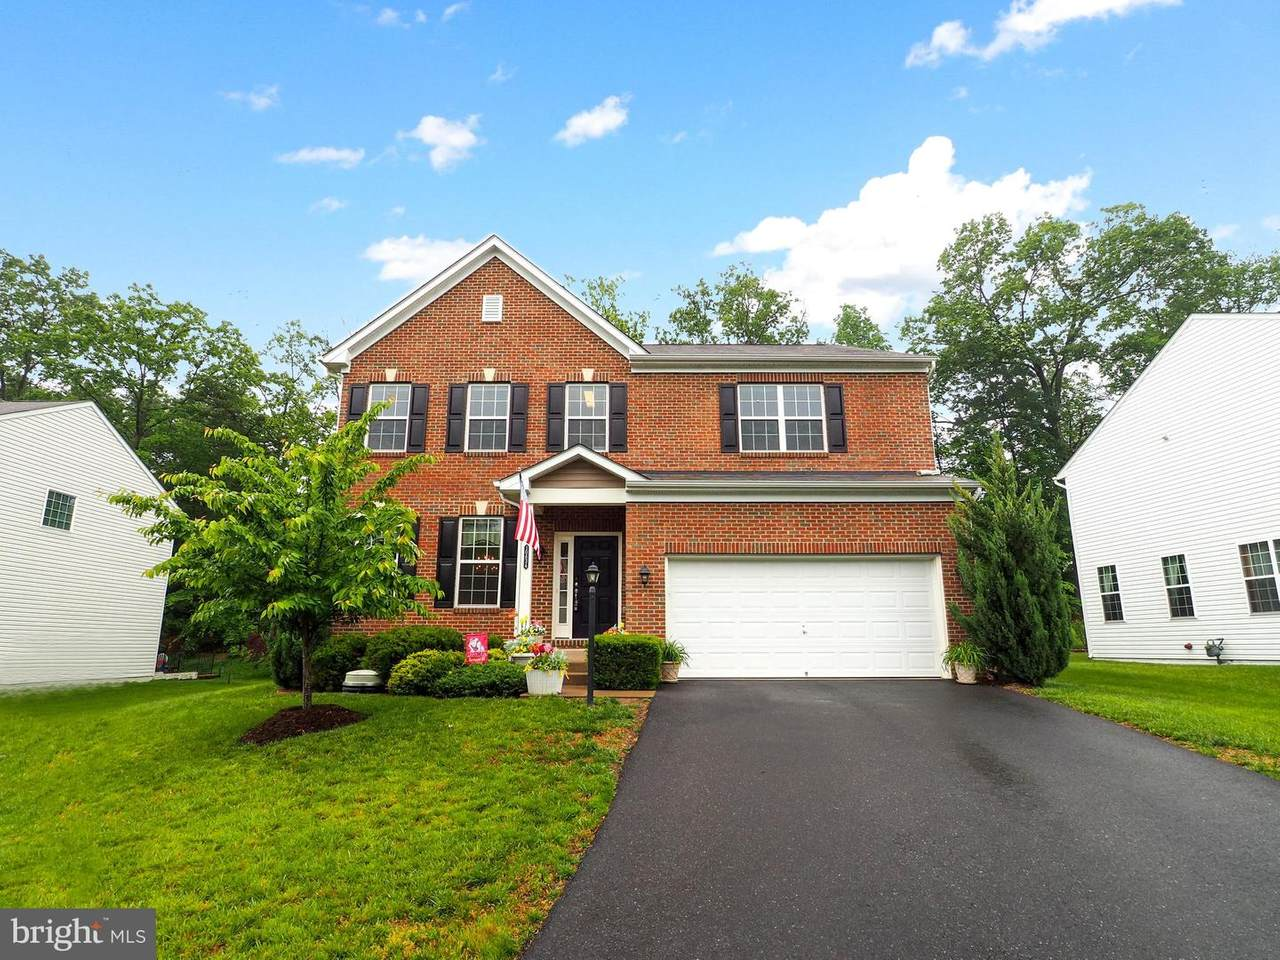 10634 Berry Orchard Court - Photo 1